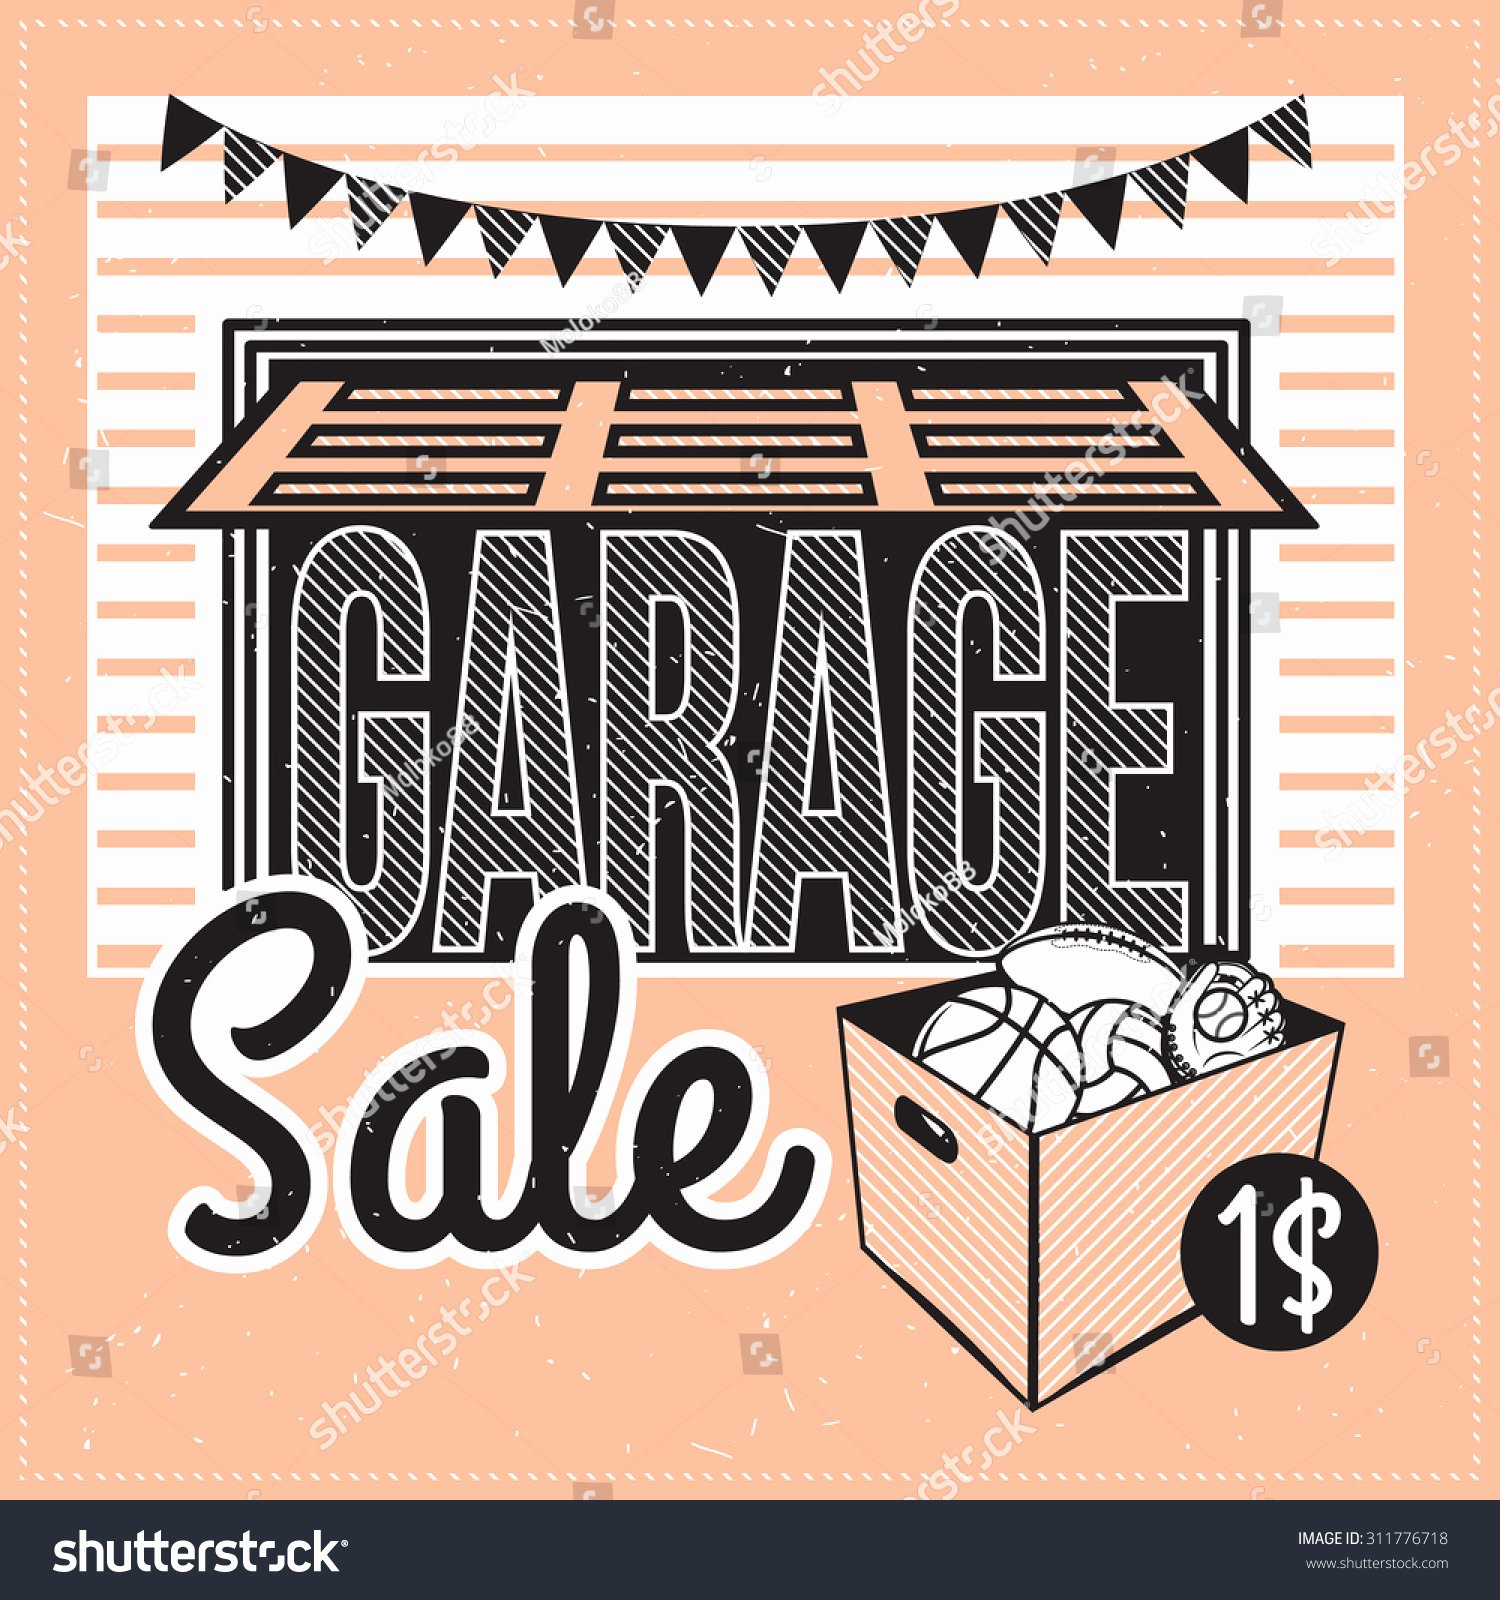 Yard Of the Month Sign Template Unique Garage Yard Sale with Signs Box and Household Items